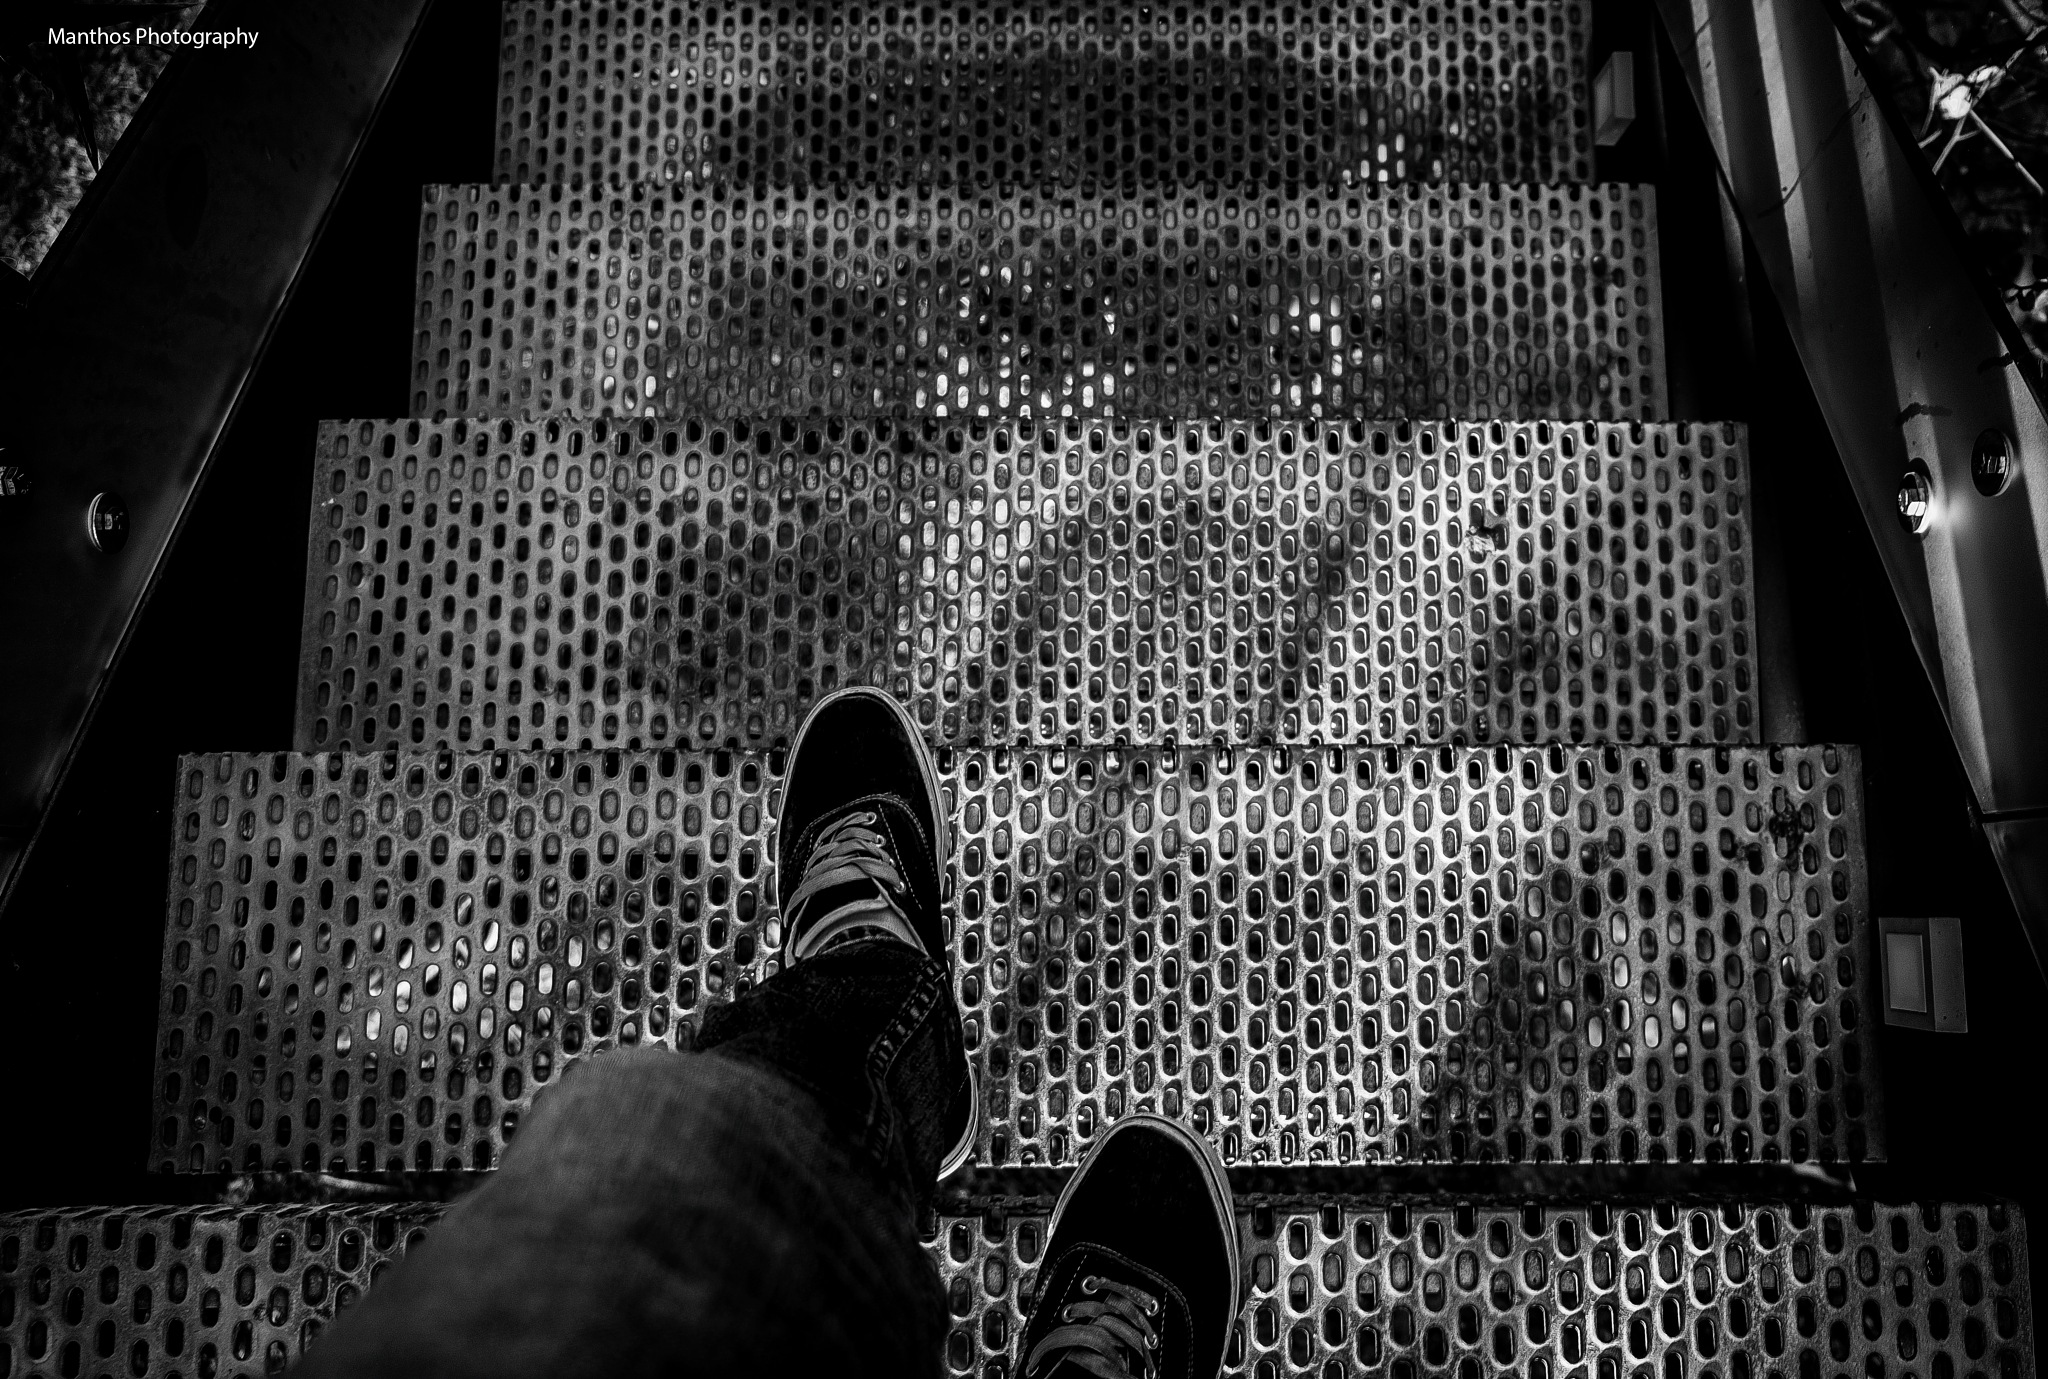 Steps by Manthos